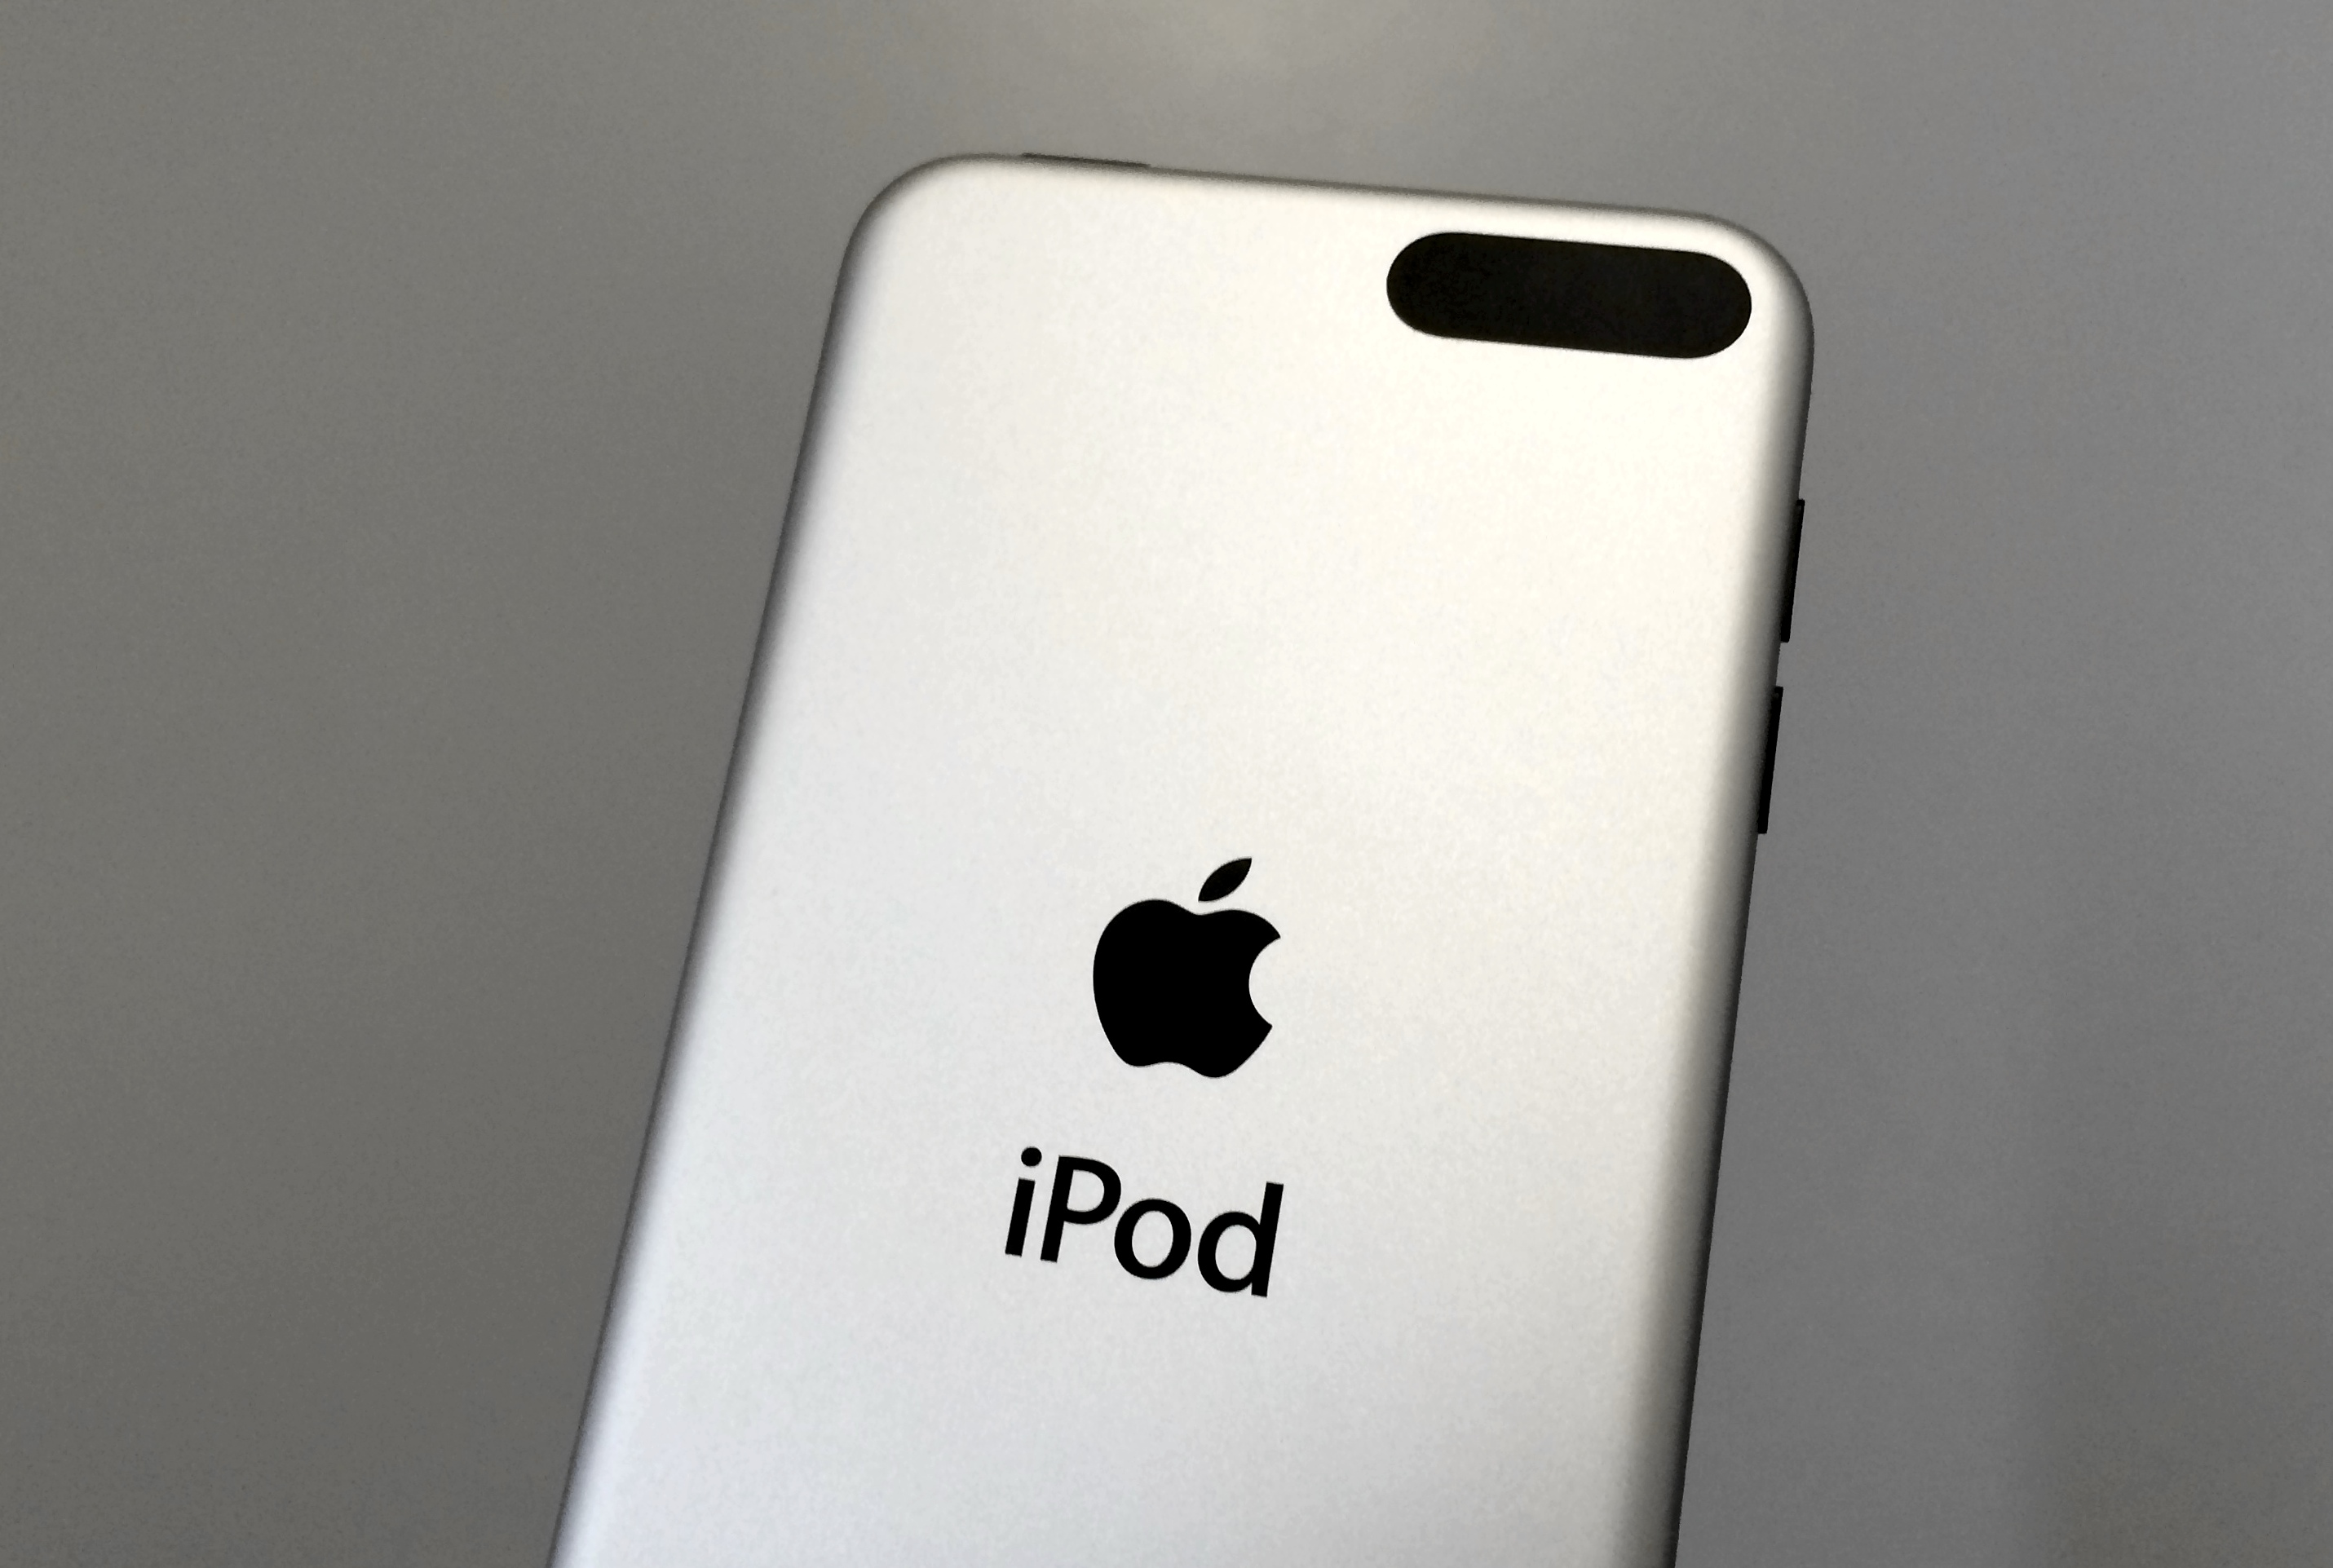 Overall the iOS 8.1.3 iPod touch performance is good.